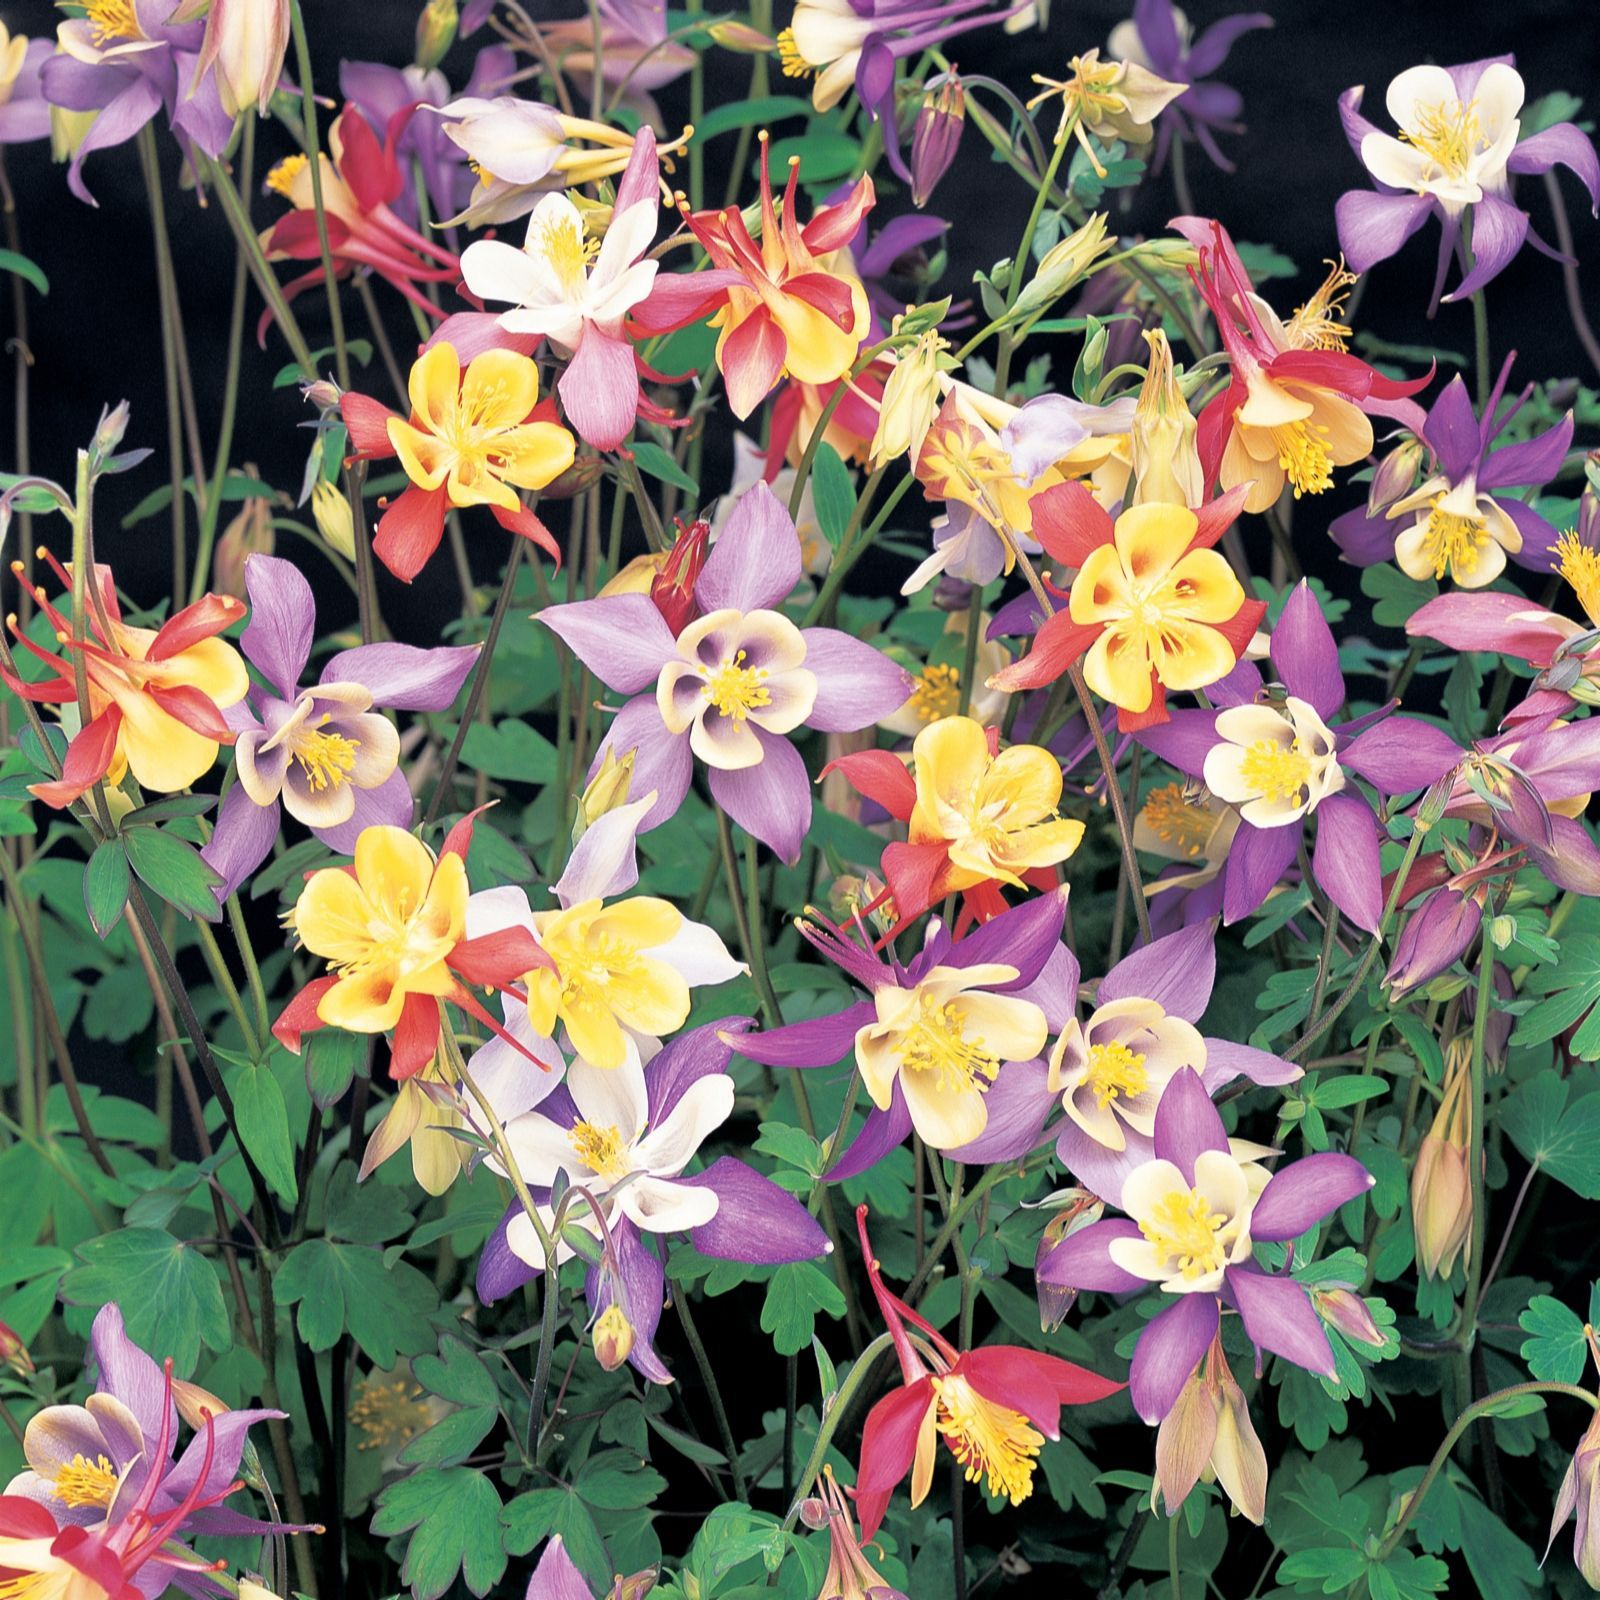 509473 Thompson Morgan 45 x Cottage Garden Perennial Garden